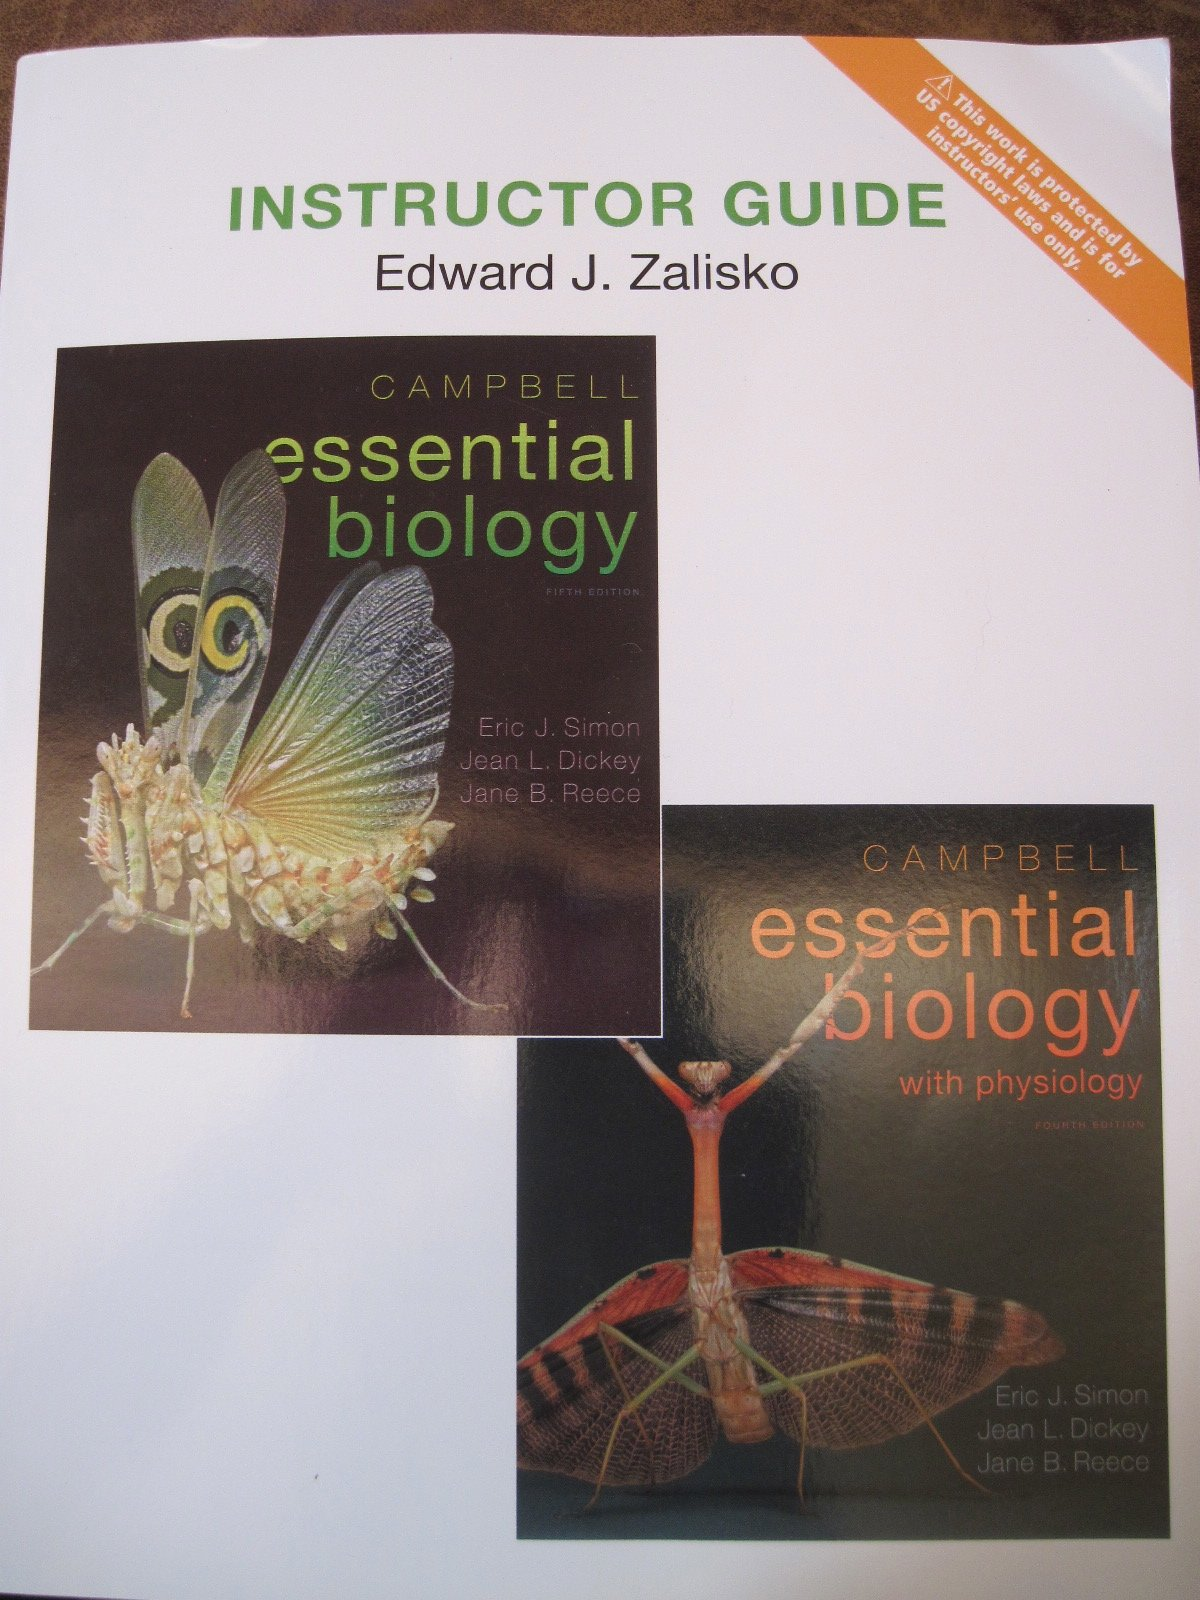 Download Instructor Guide for Campbell Essential Biology 5th Edition & Physiology , 4th Edition pdf epub